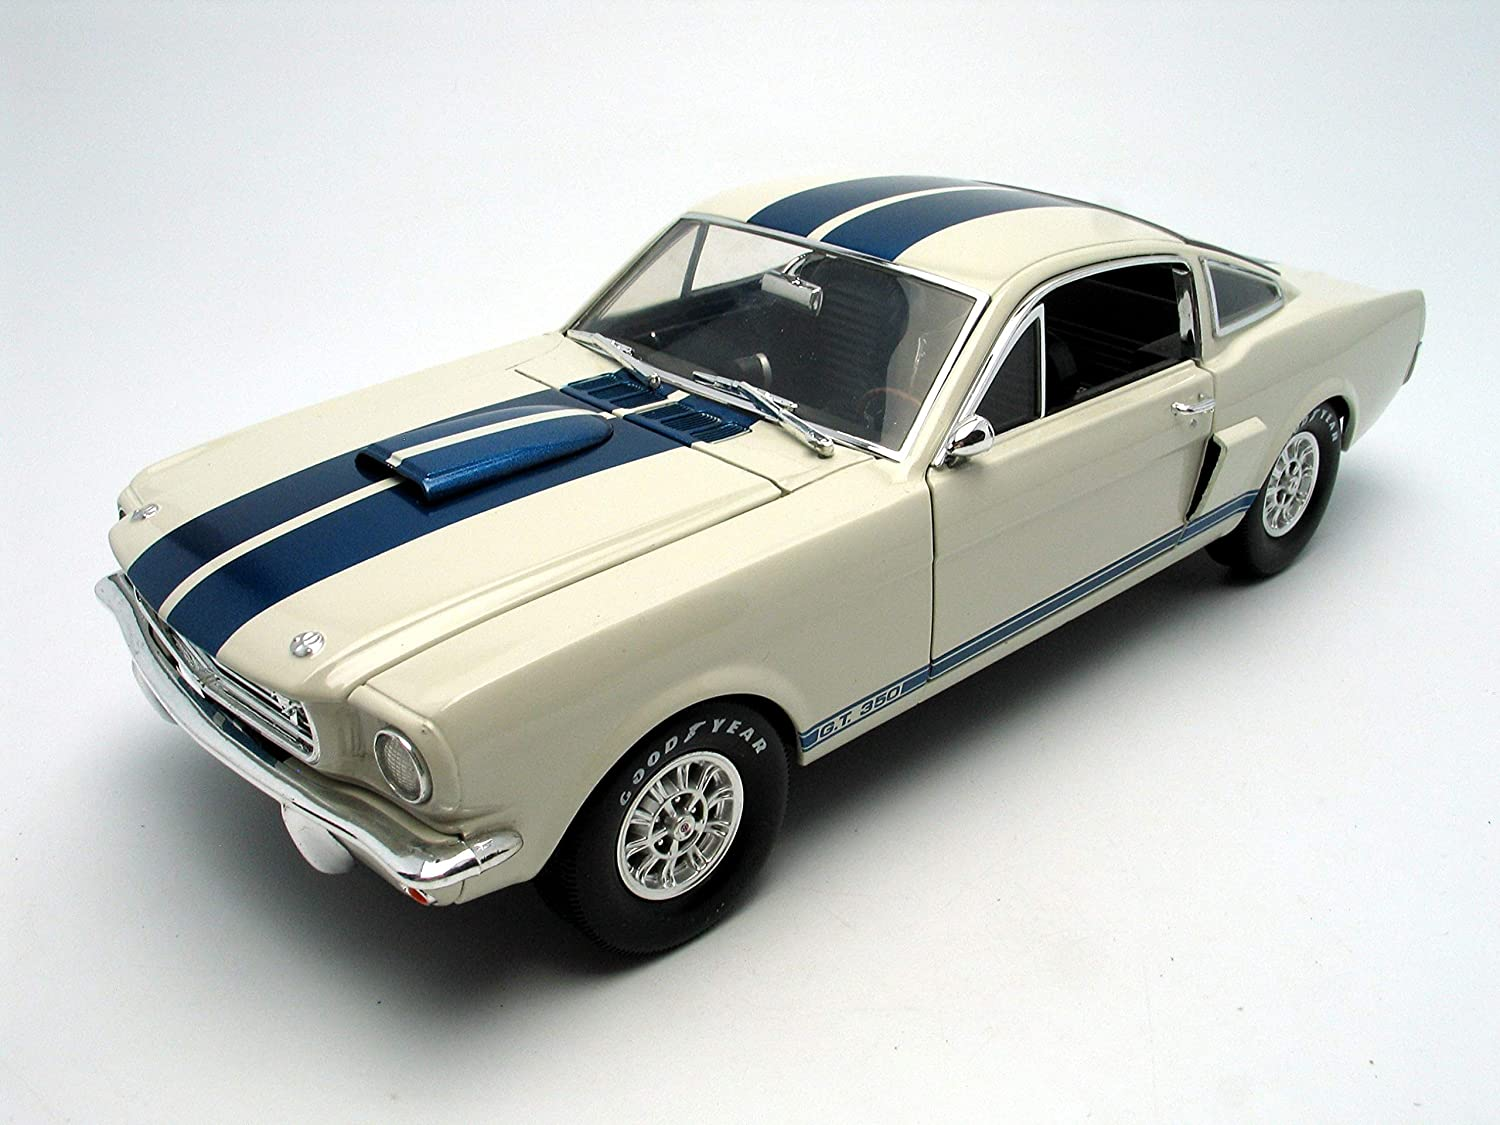 1966 Shelby Mustang Gt 350 White mit Blue Stripes 1/18 durch Shelby Collectibles Sc160